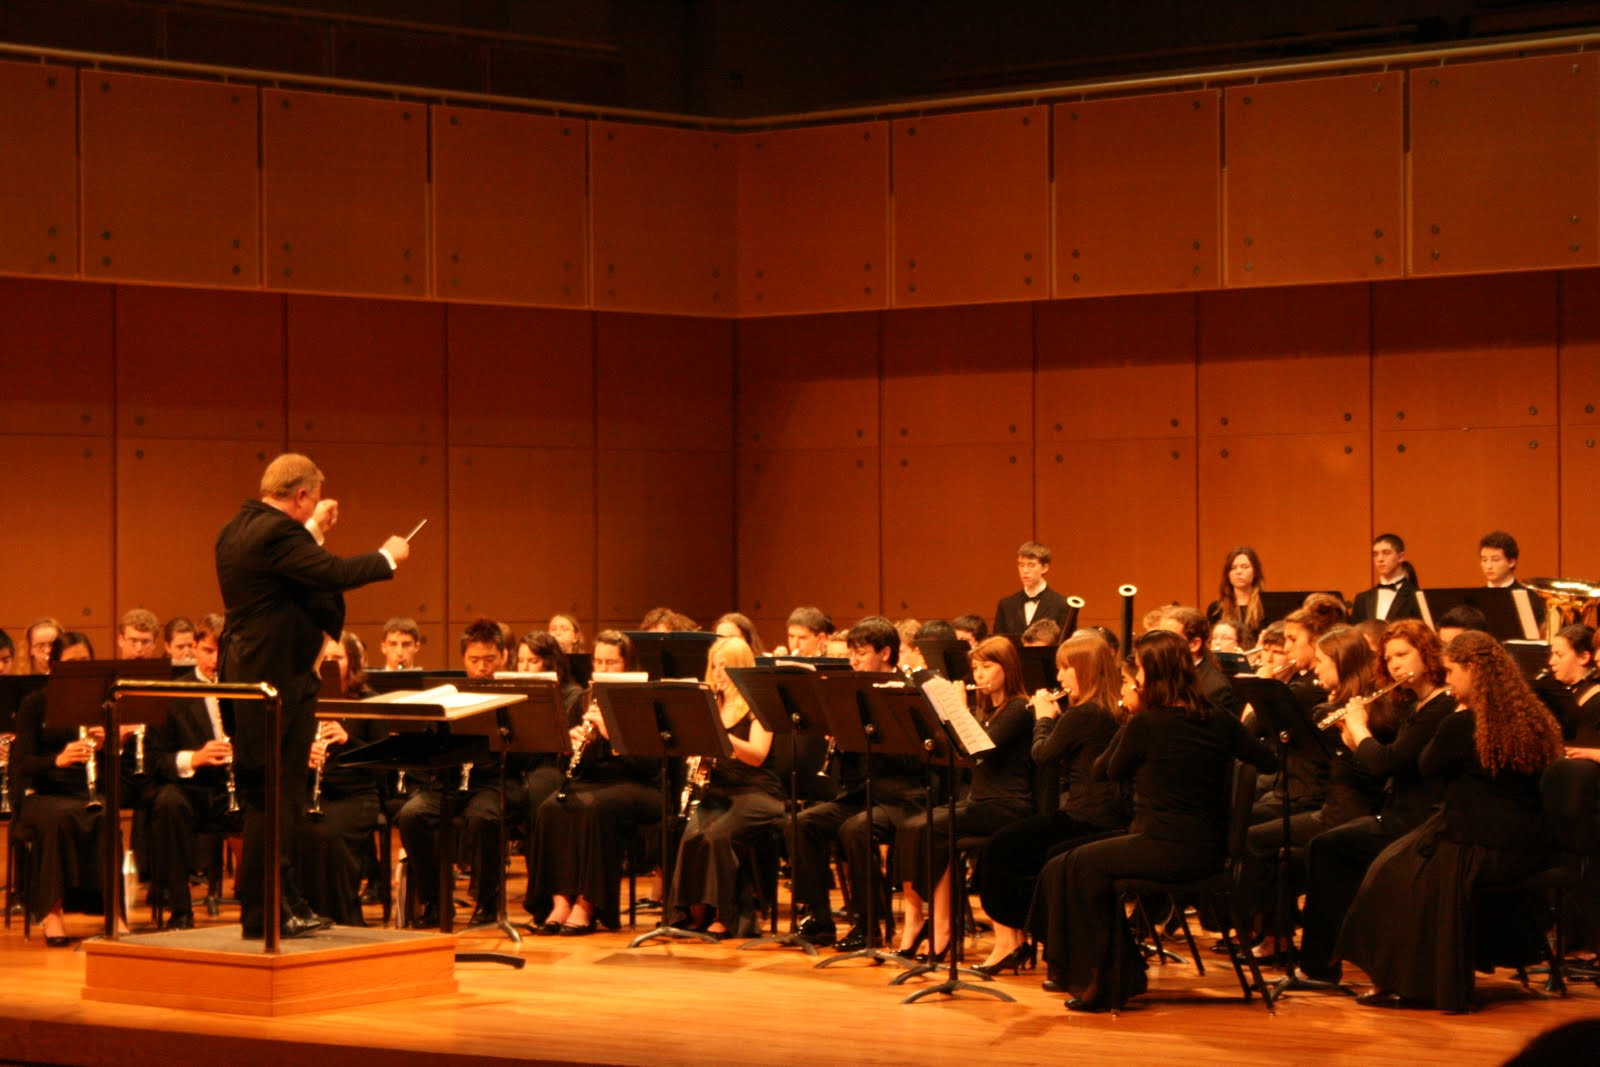 Isu Concert Band Ogle Center